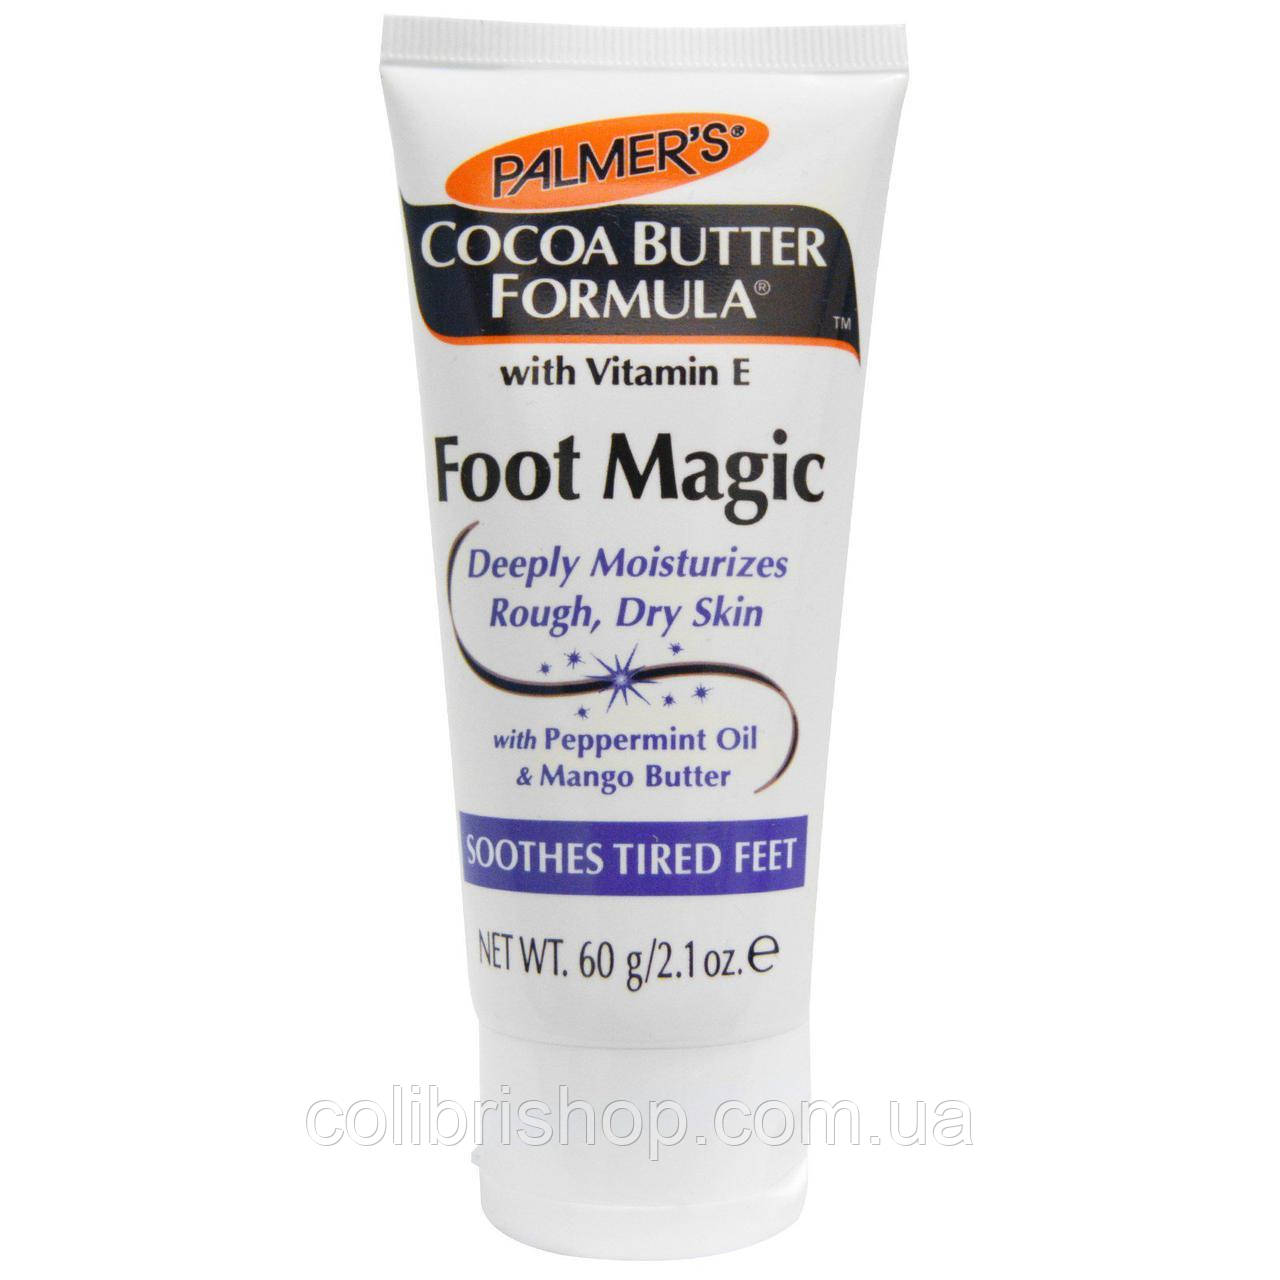 Крем для стоп Palmer's, Cocoa Butter Formula, Foot Magic с маслом мяты и манго (60 г)